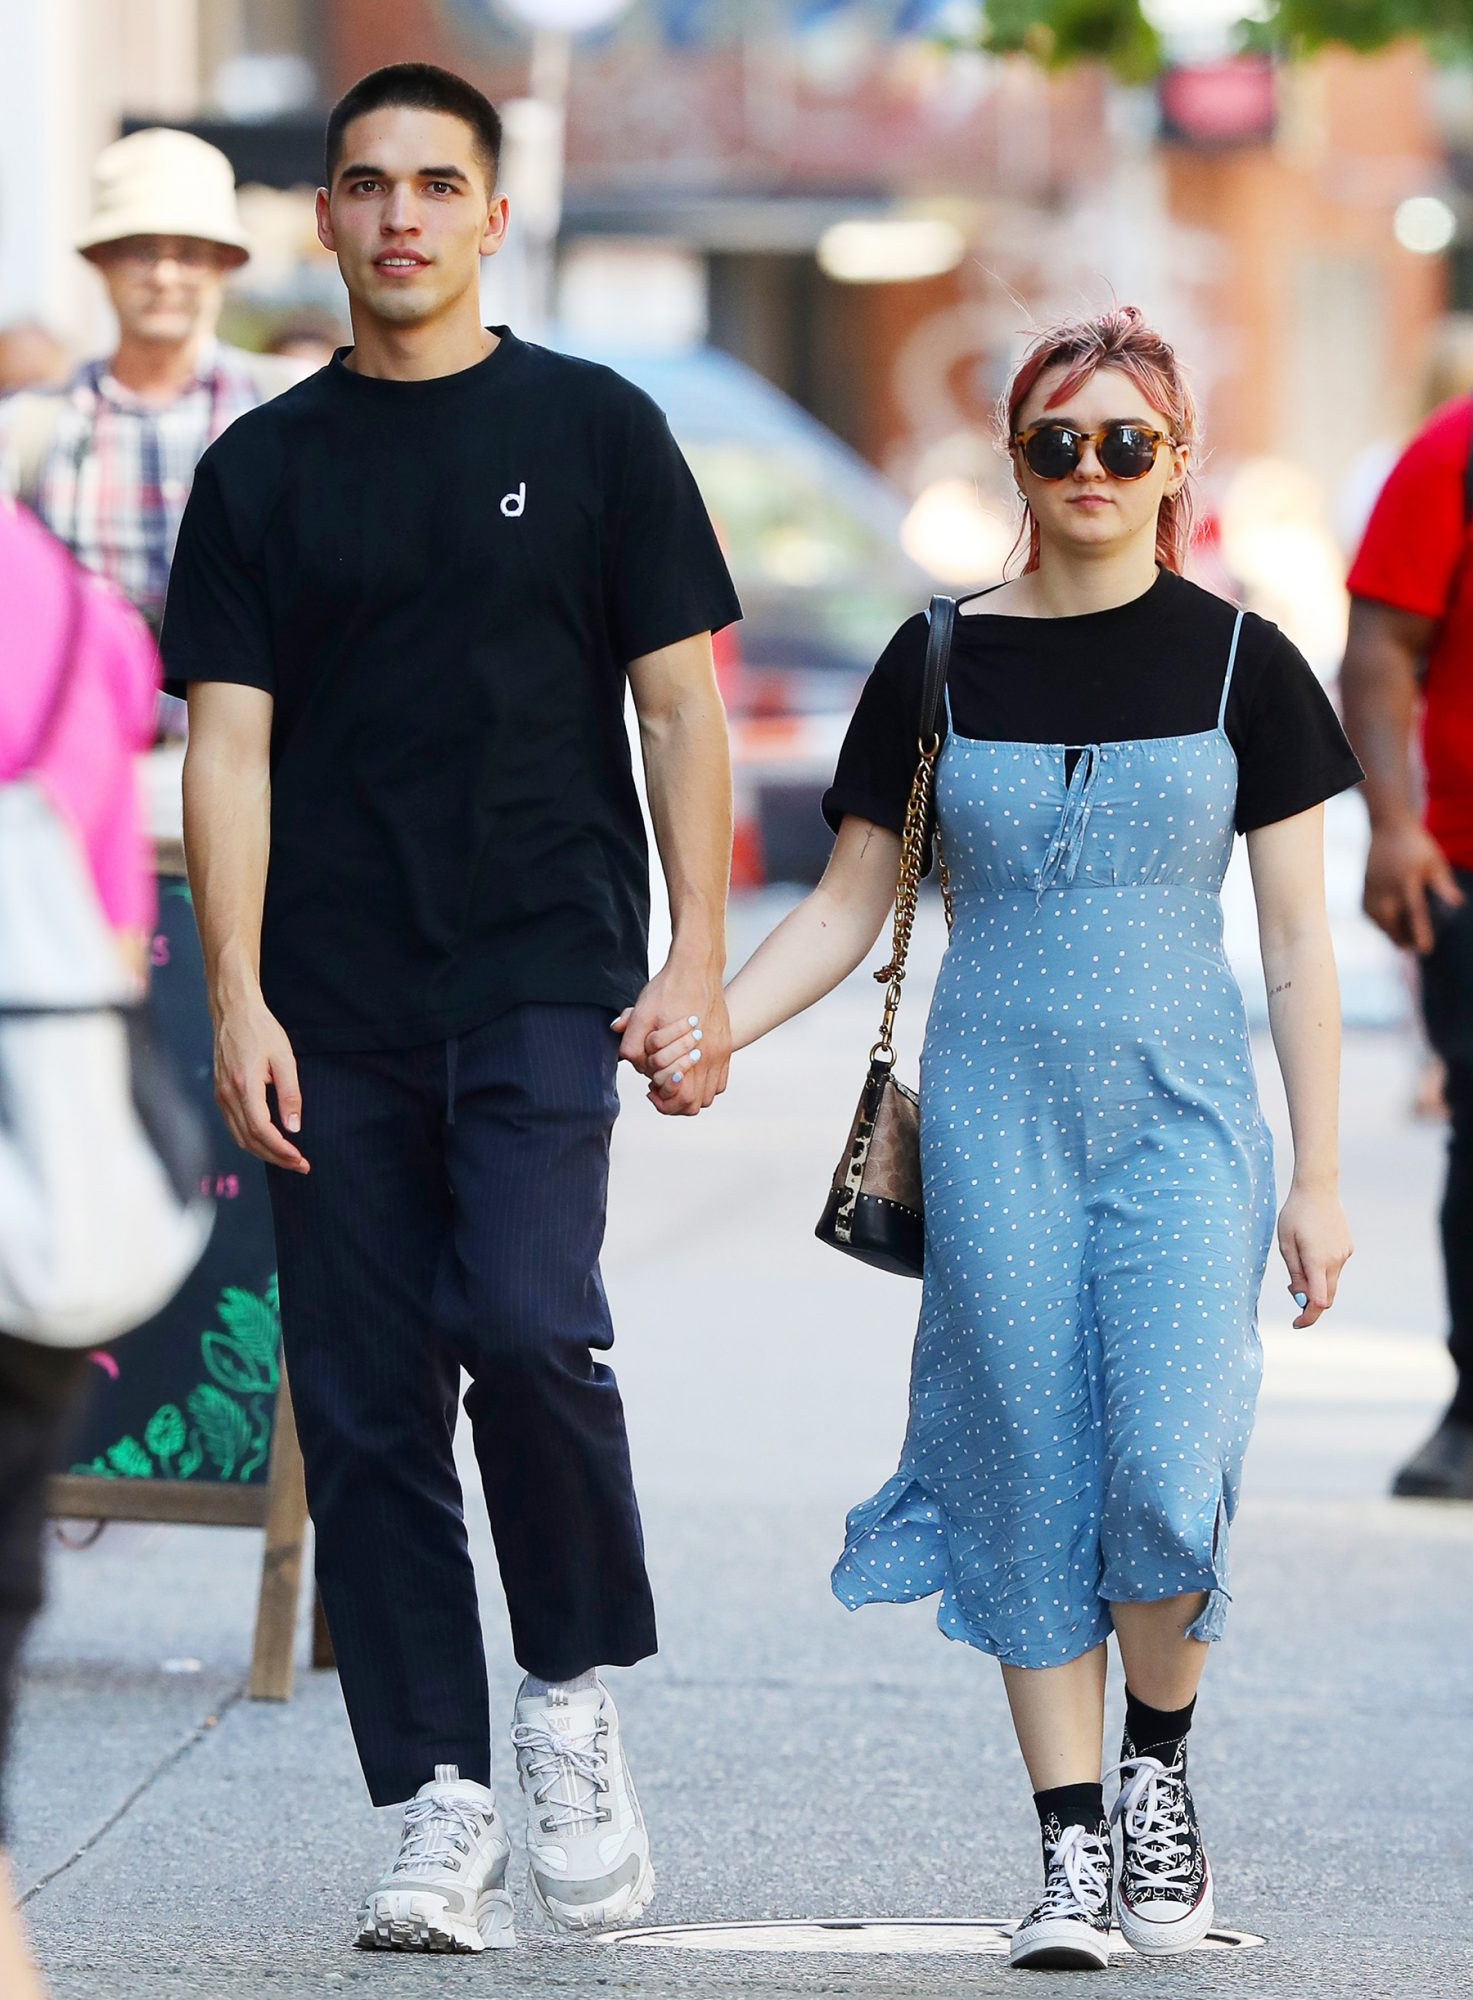 Maisie Williams and boyfriend Reuben Selby